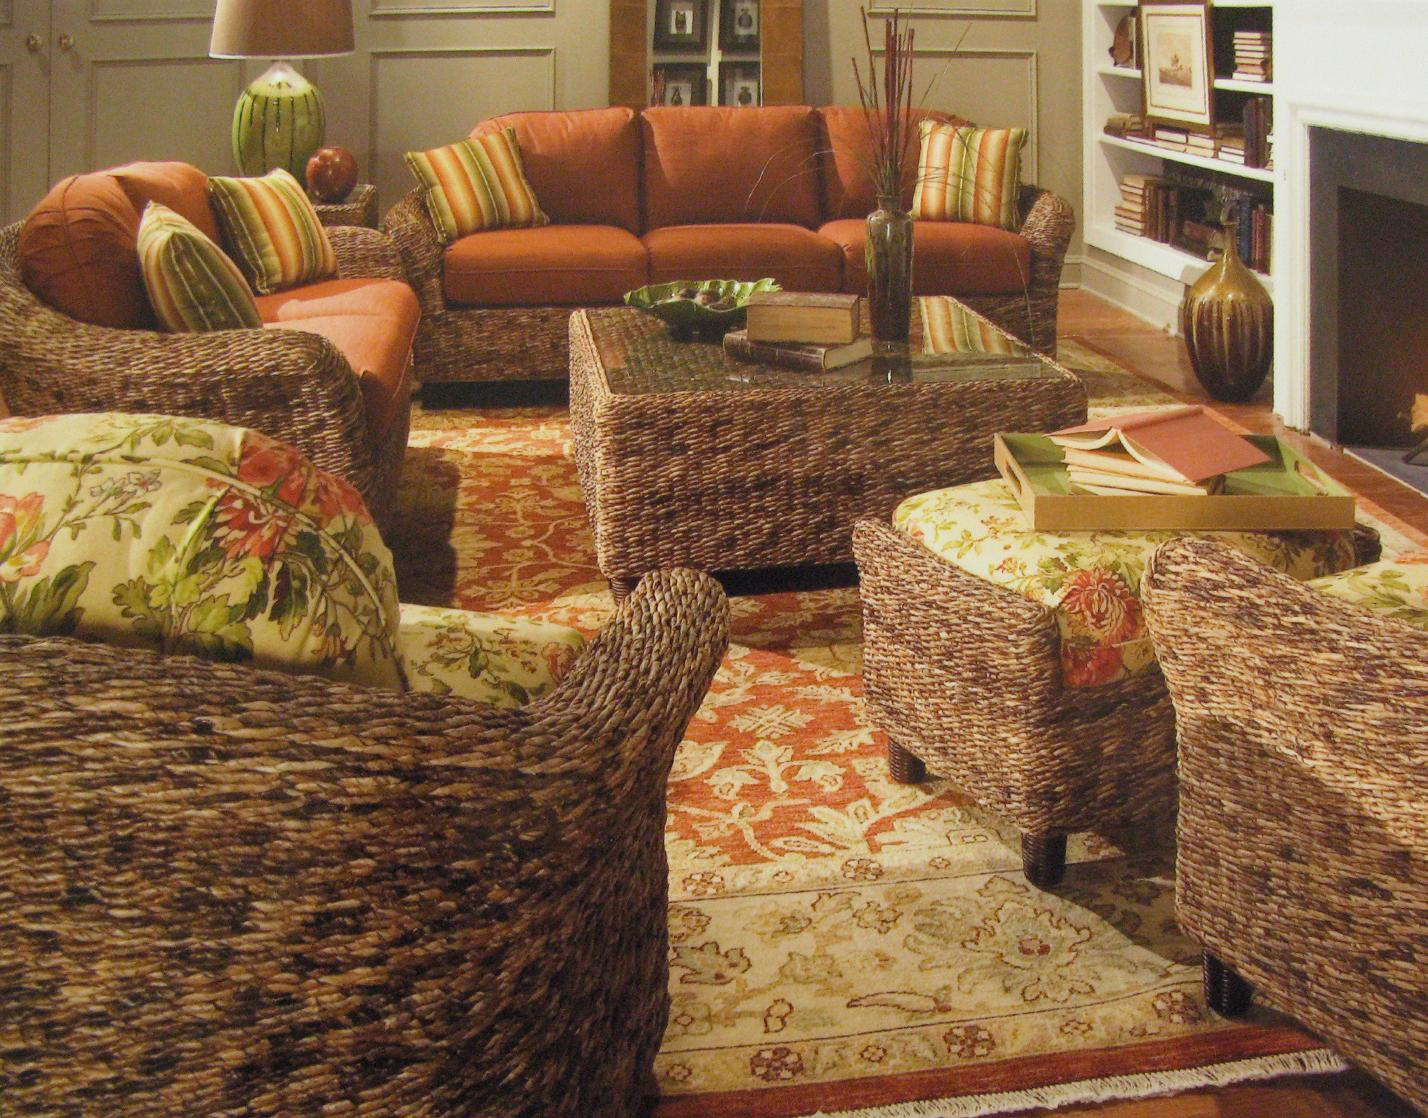 Sunroom Furniture for Your Home Indoor Wicker and Rattan